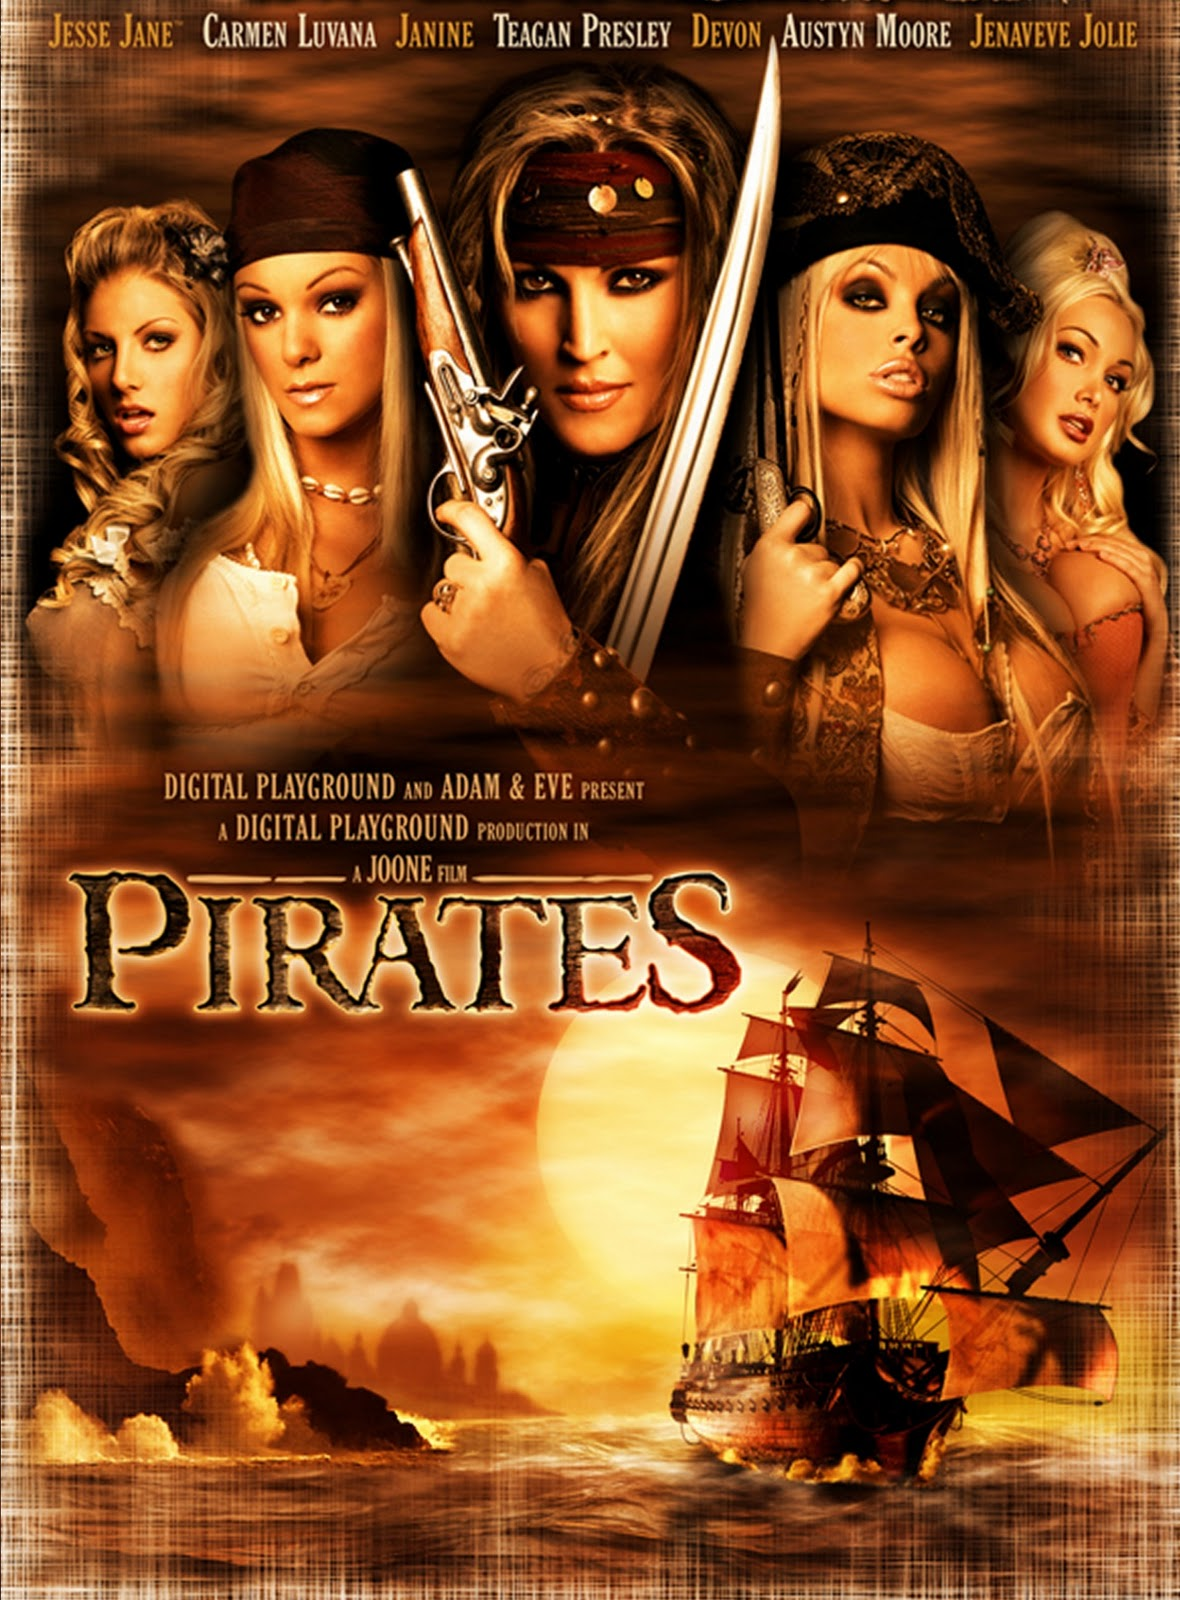 Photo sex pirates of caibbean versi porno erotic image